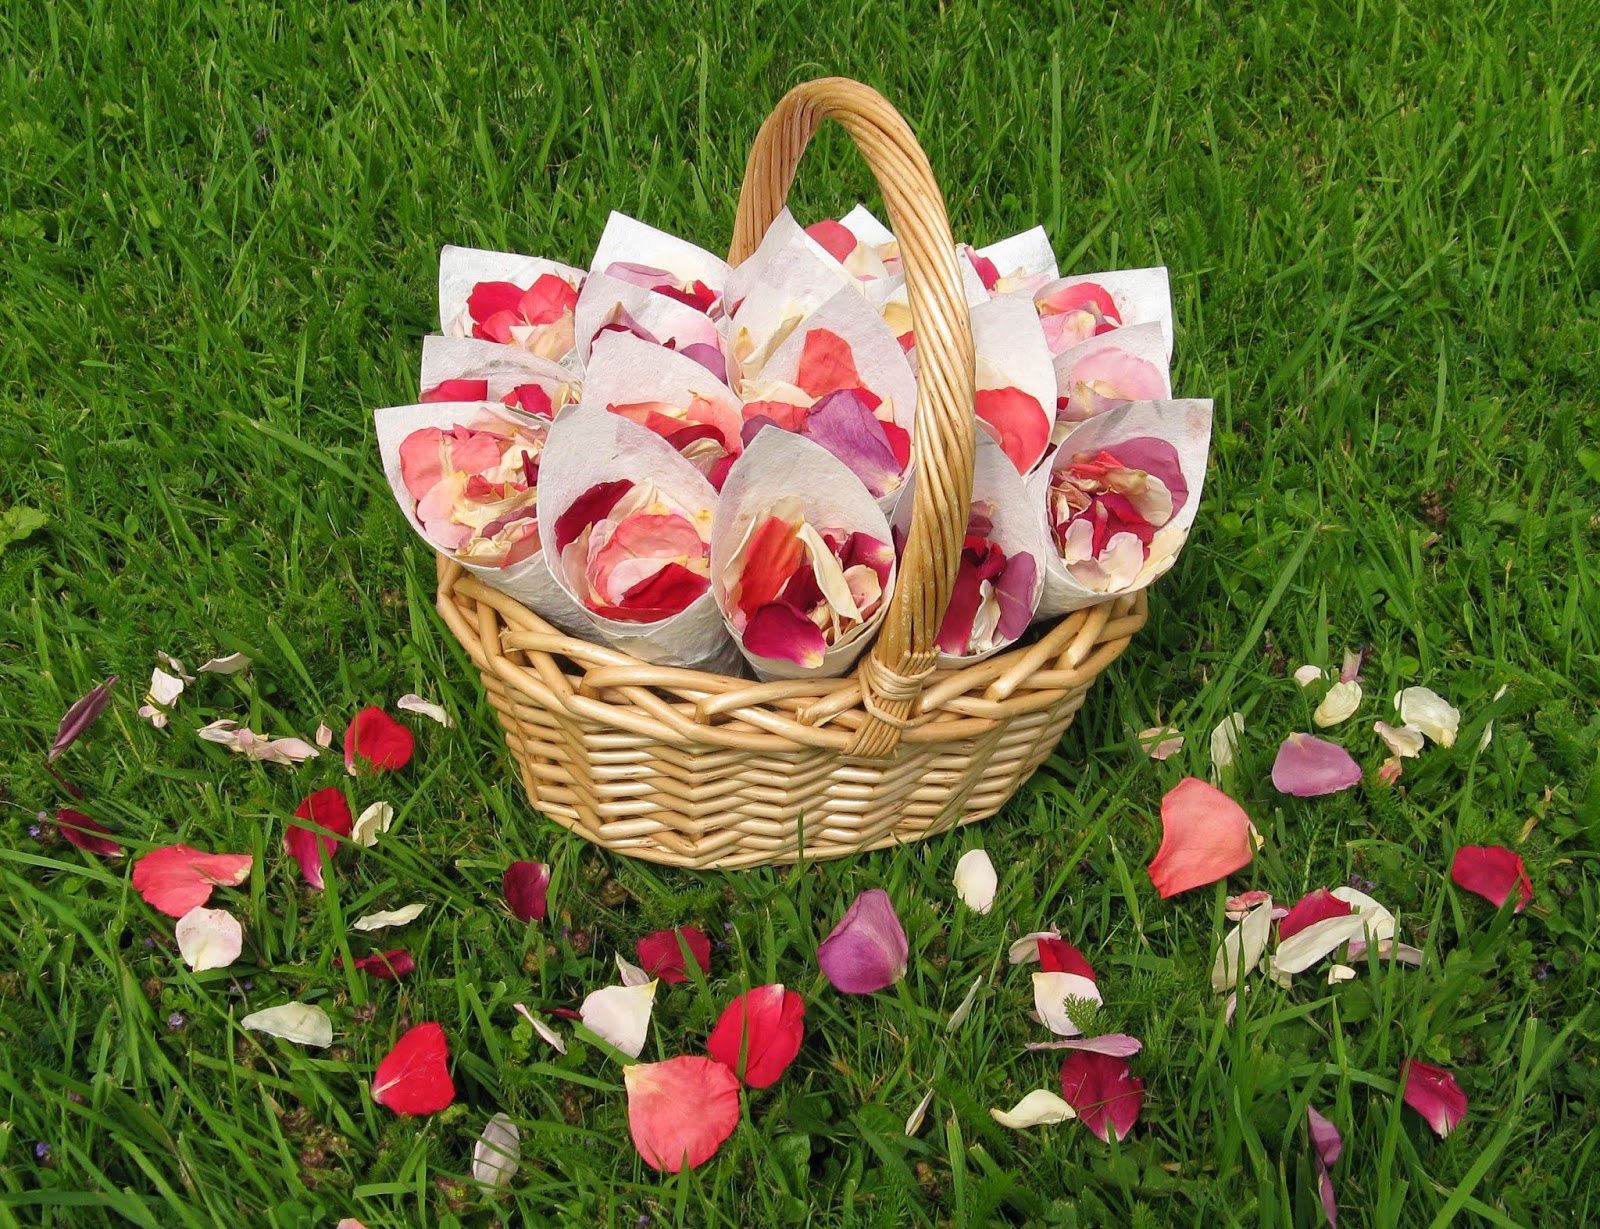 Wedding Baskets For Flower Petals : The confetti june